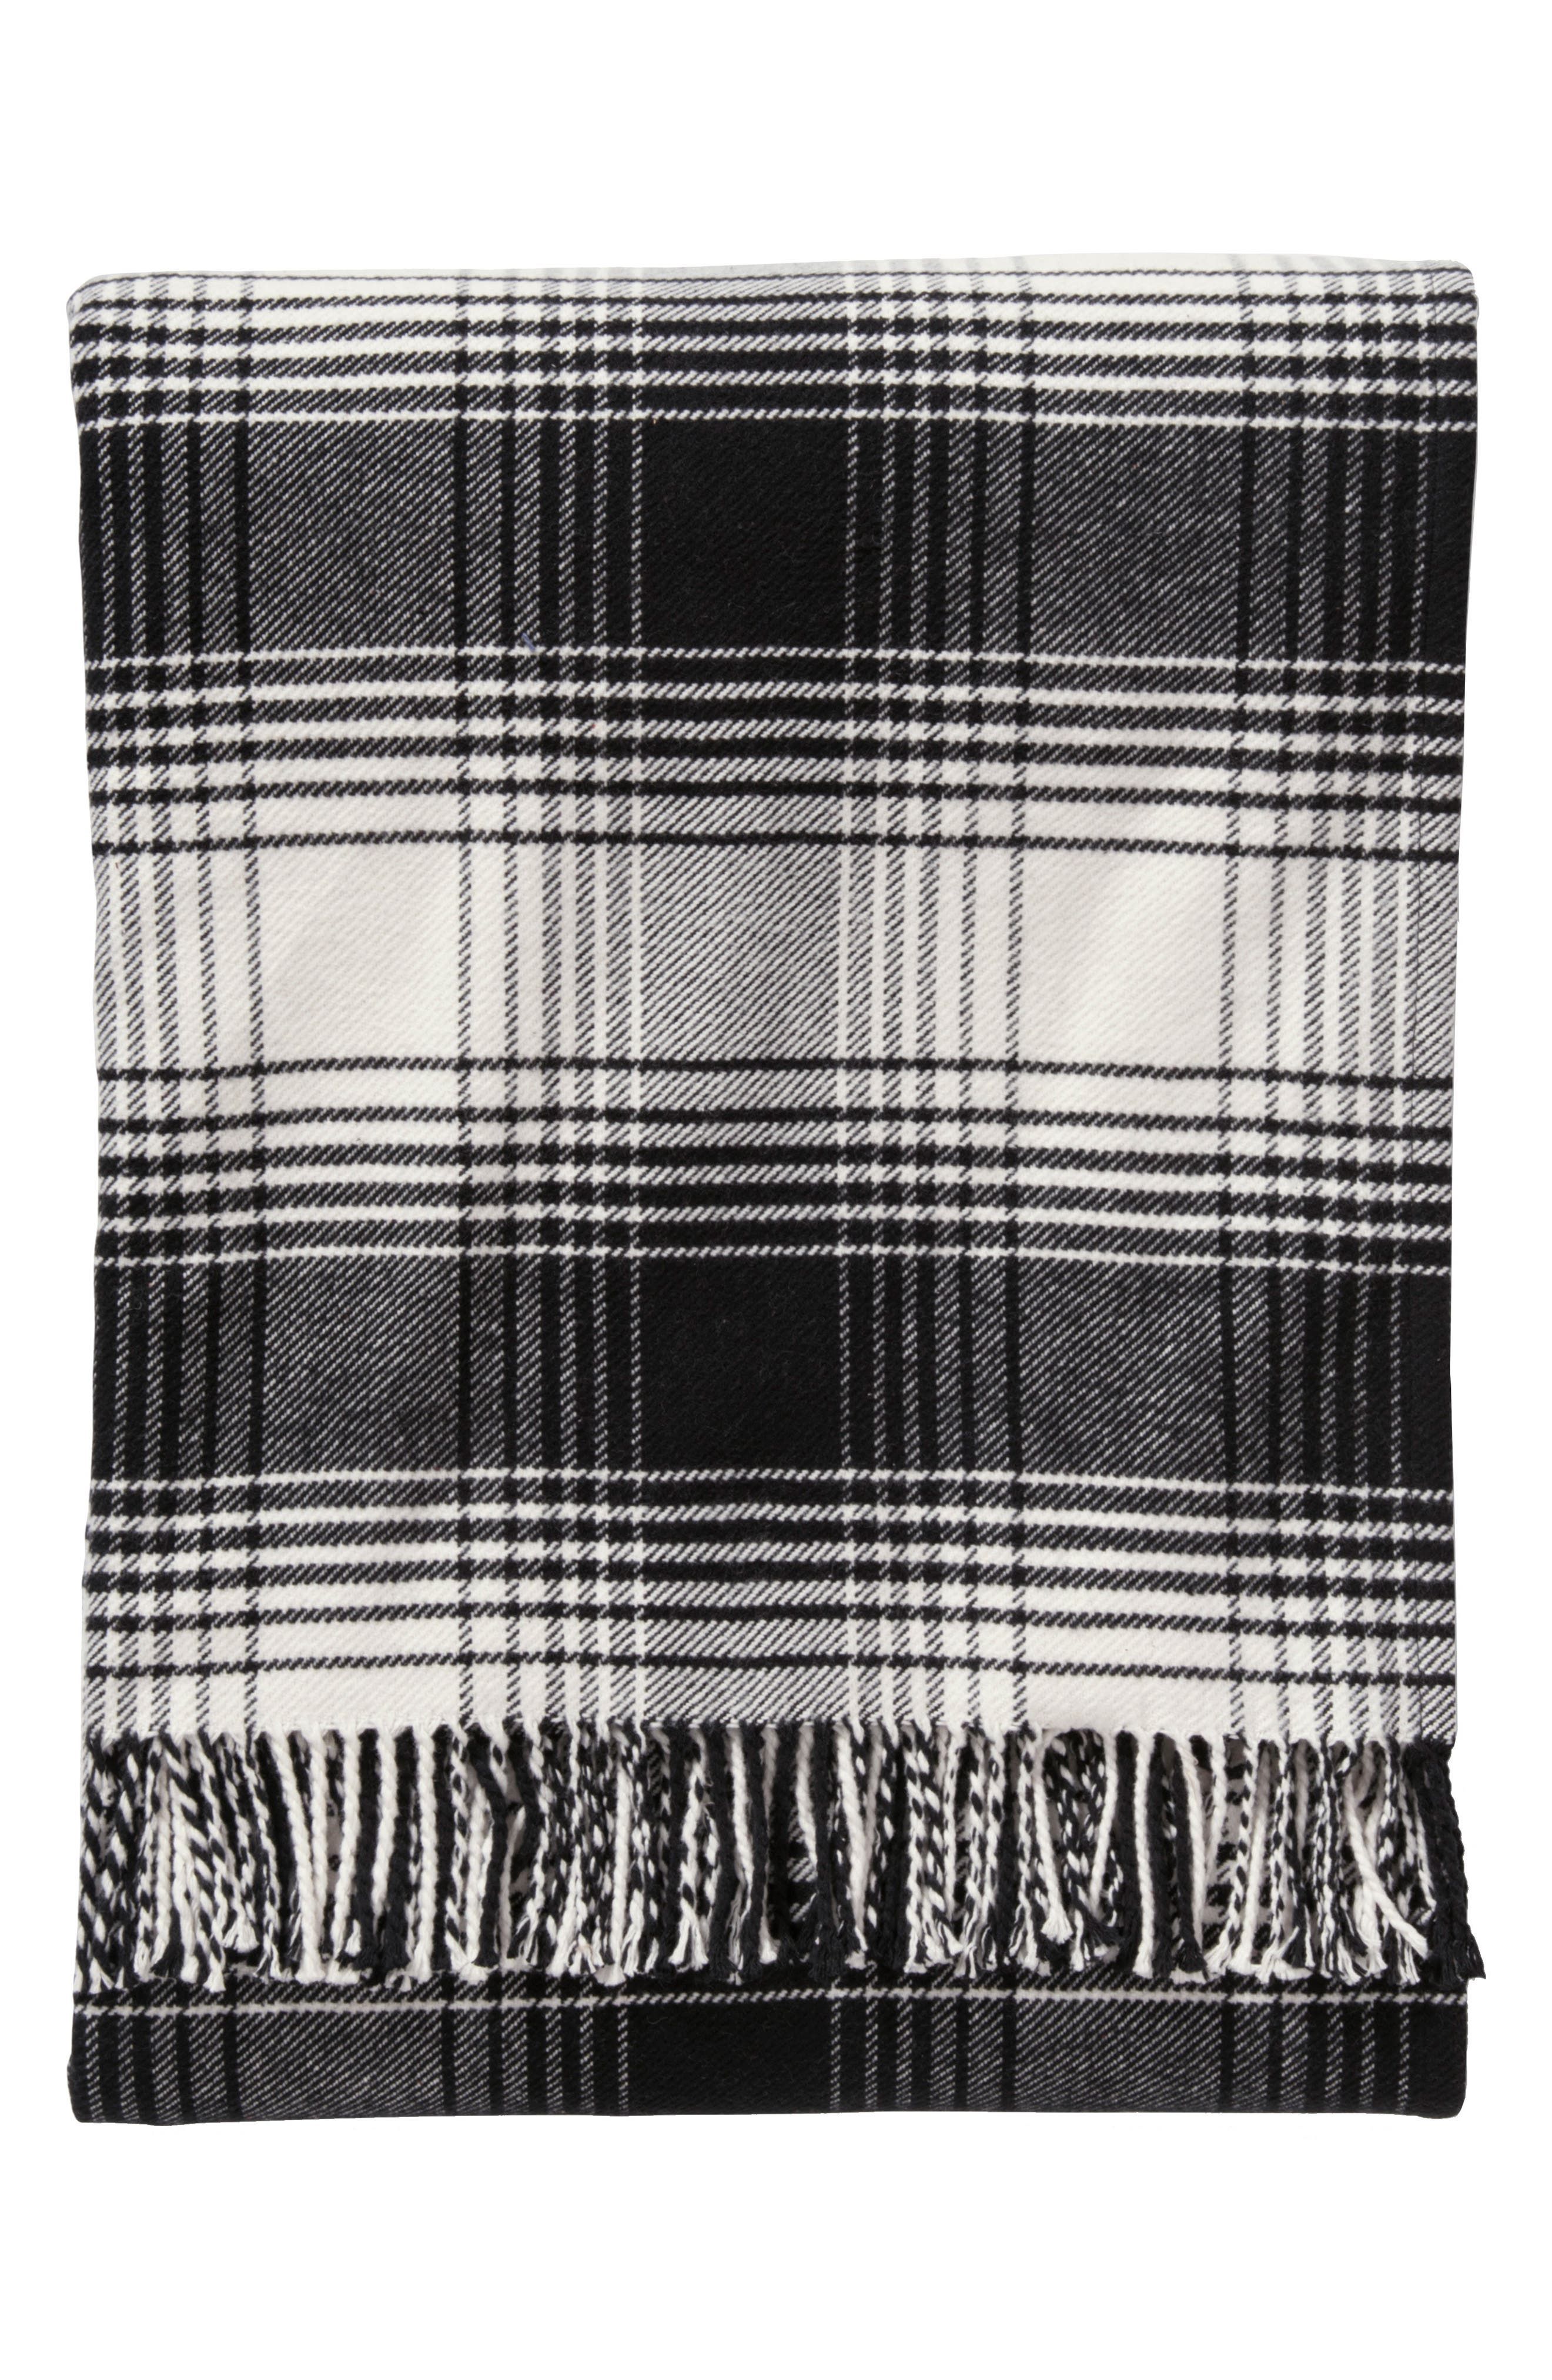 Warren Plaid Throw,                             Main thumbnail 1, color,                             Black And White